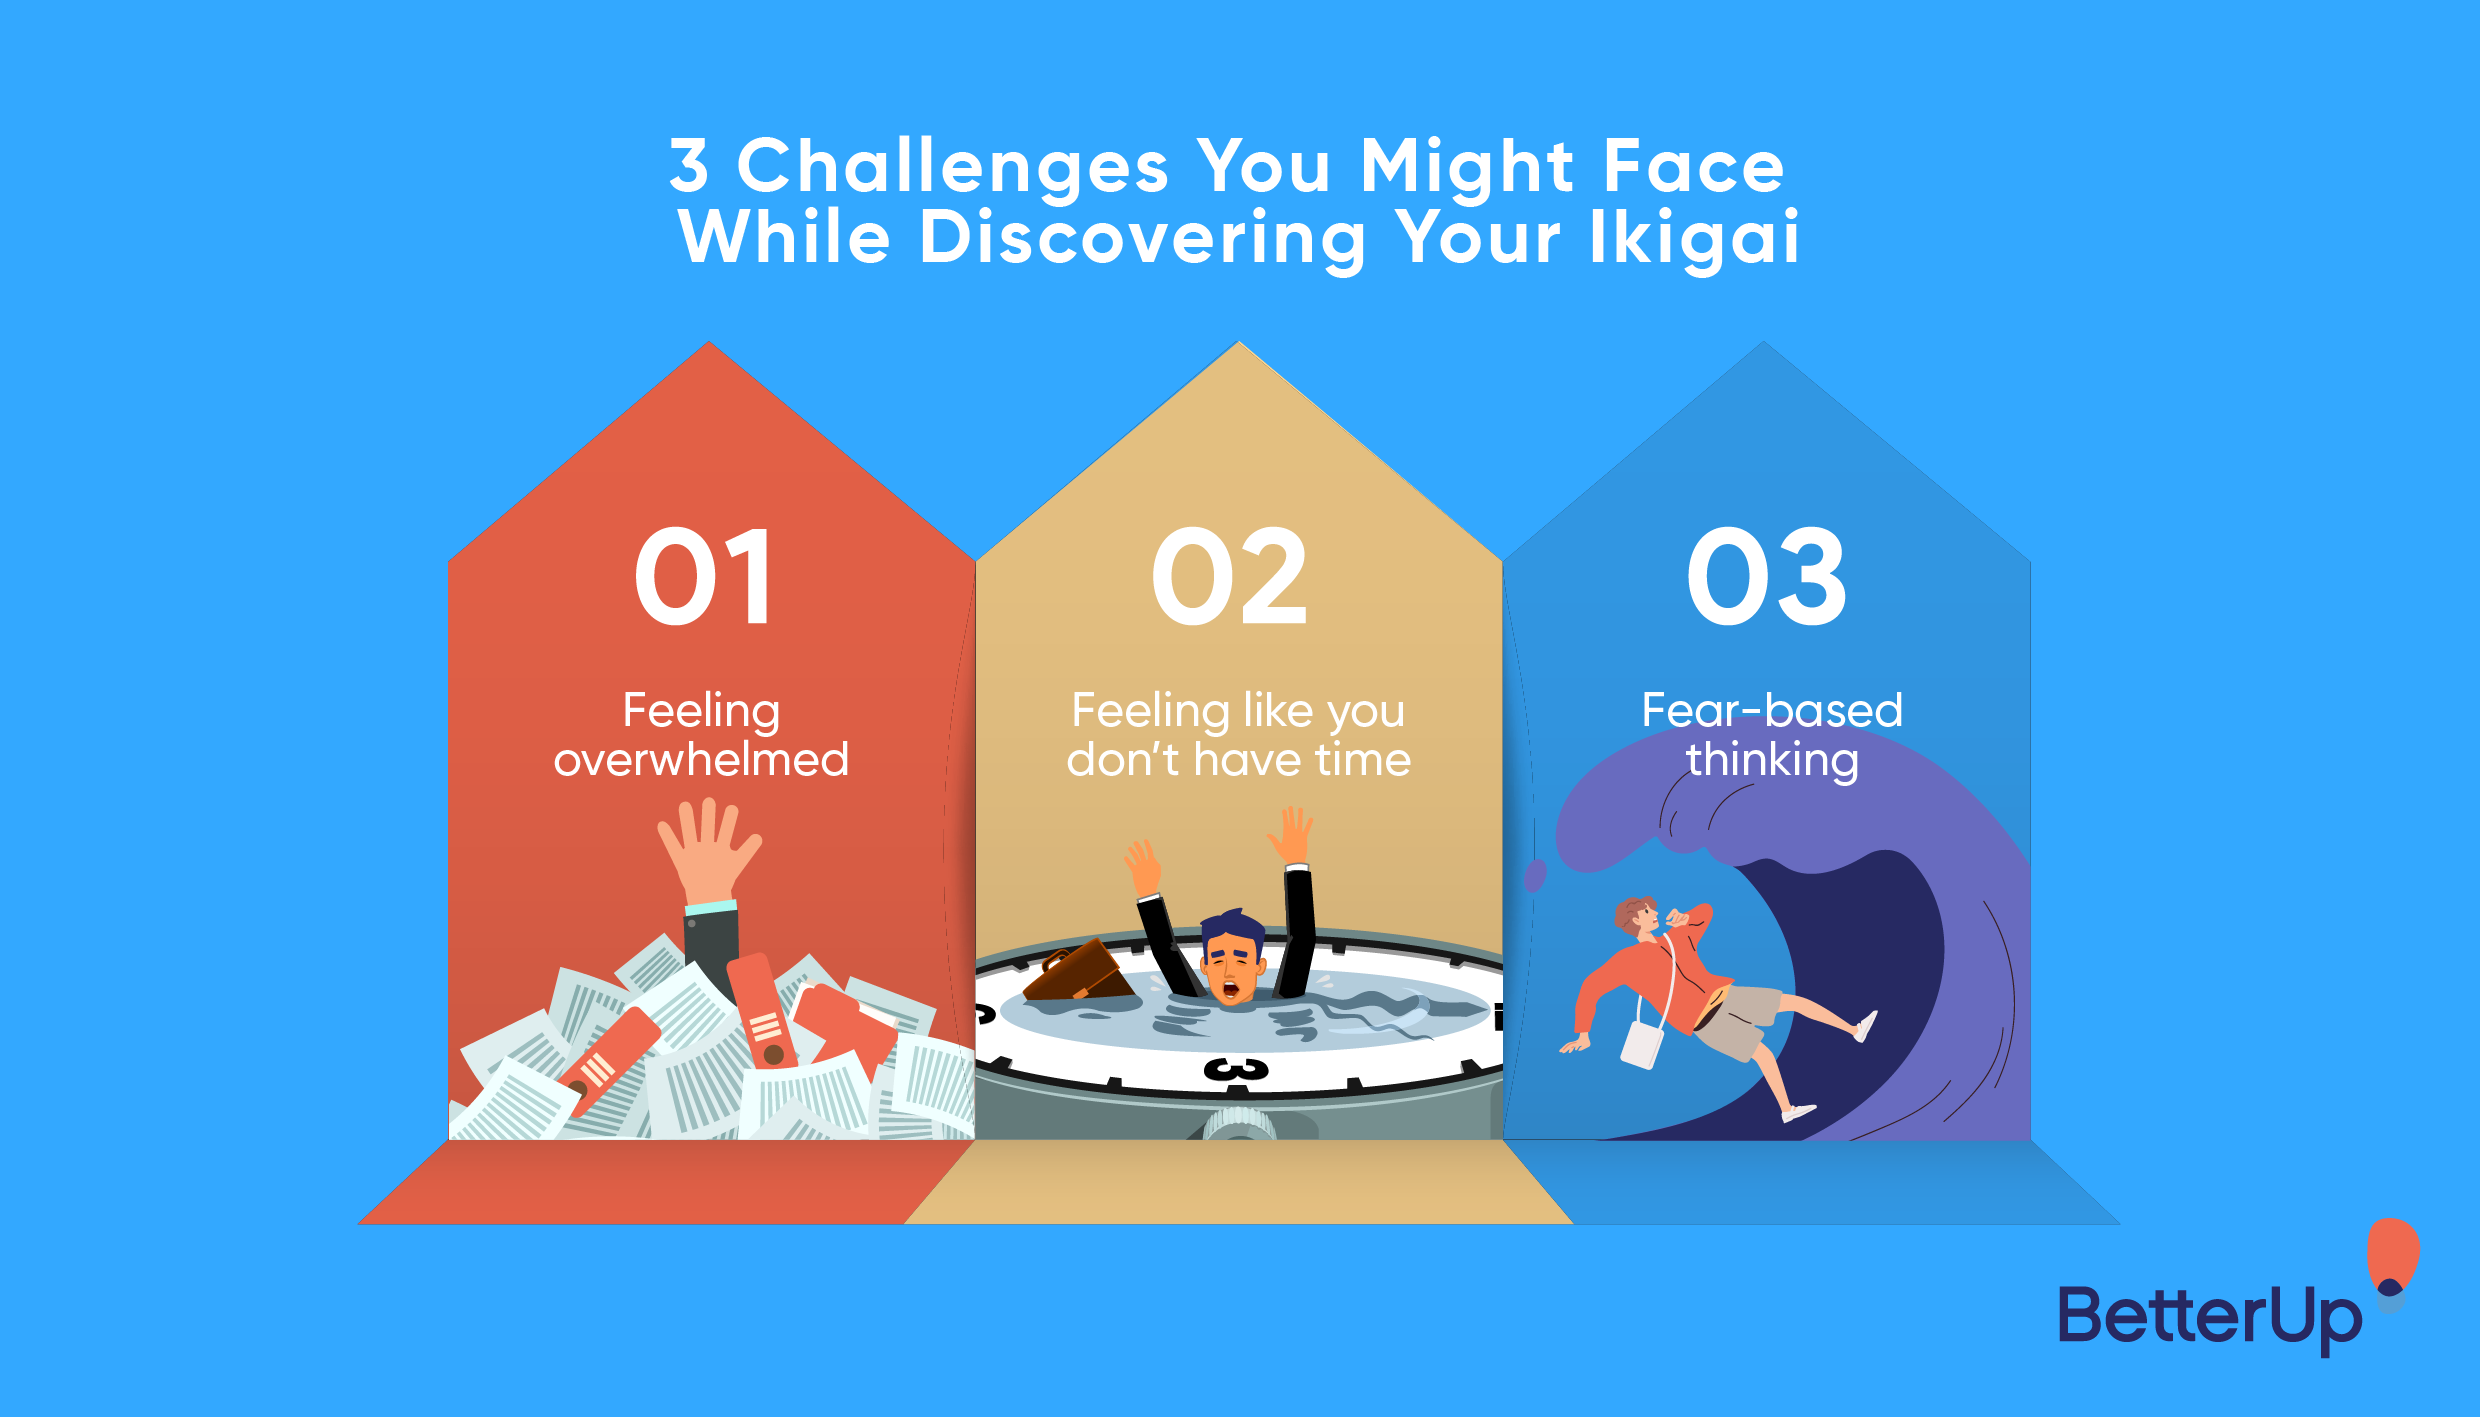 3 challenges you might face while discovering your ikigai